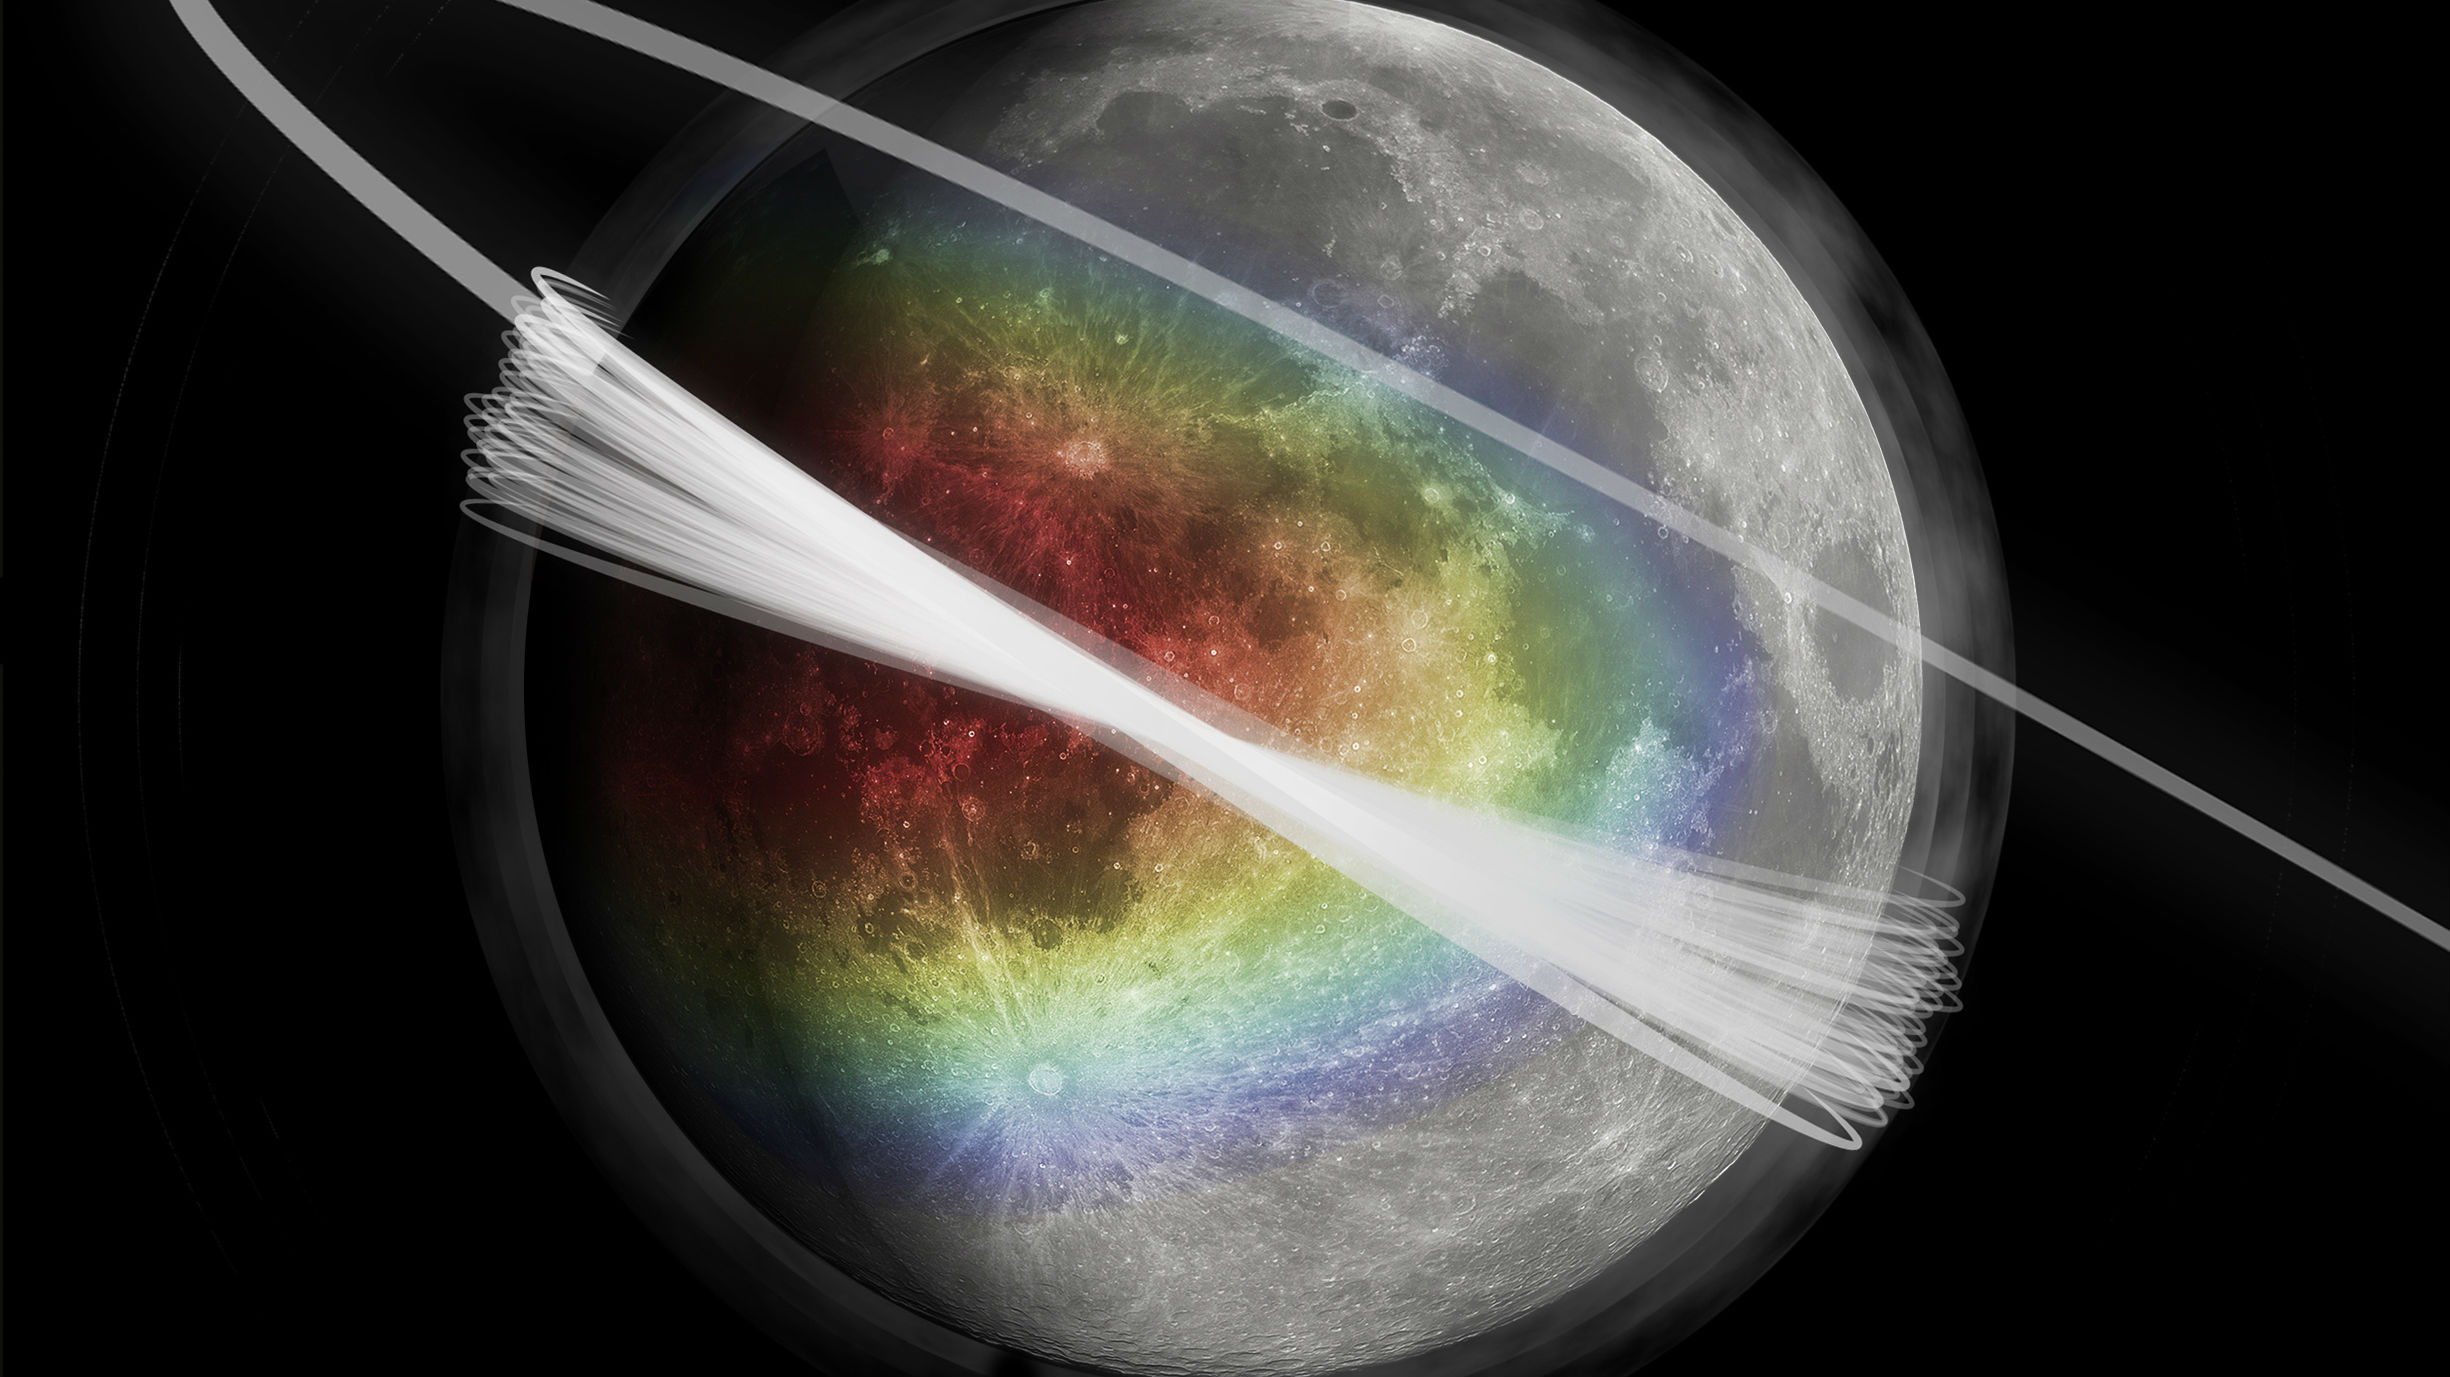 This image shows an artist's conception of the lunar dust exosphere surrounding the Moon. The colour represents the amount of material ejected from the surface, showing a peak in the apex direction. A haze of dust is shown around the Moon. Gray faded circles are overlaid on the lunar surface to represent the random nature of the primary impactors. An artist's conception of the spacecraft (LADEE) trajectory is also shown.